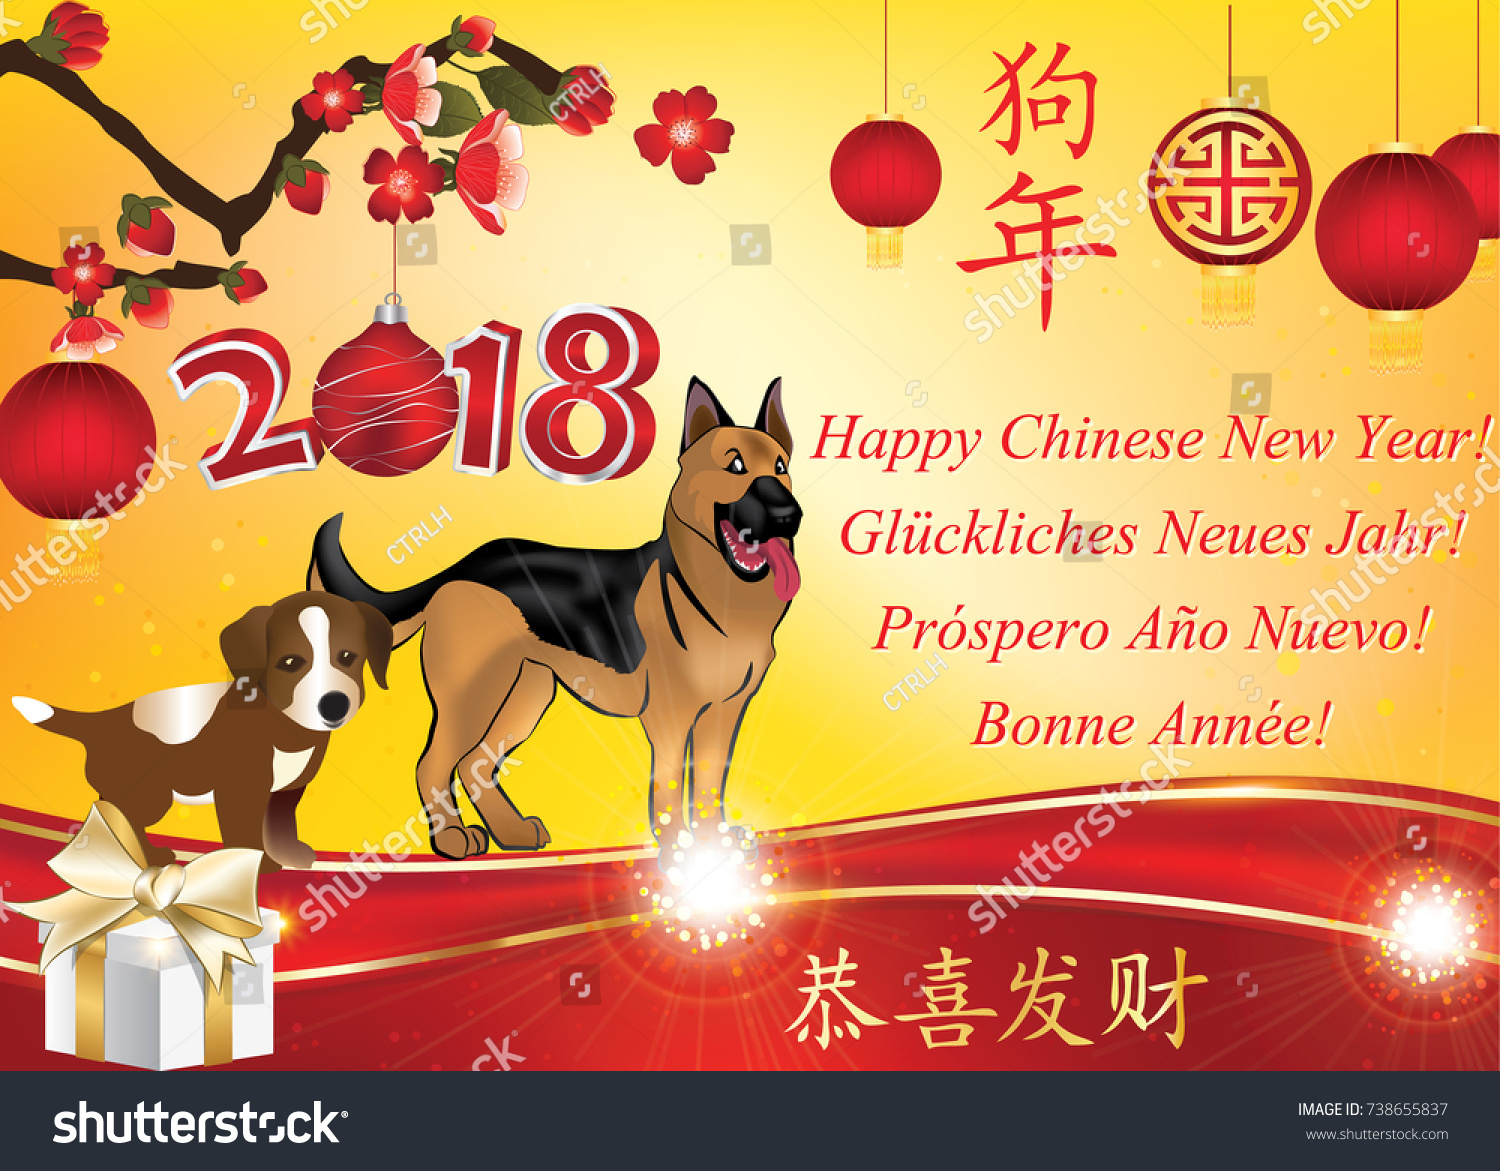 Greeting Card Chinese New Year 2018 Stock Illustration 738655837